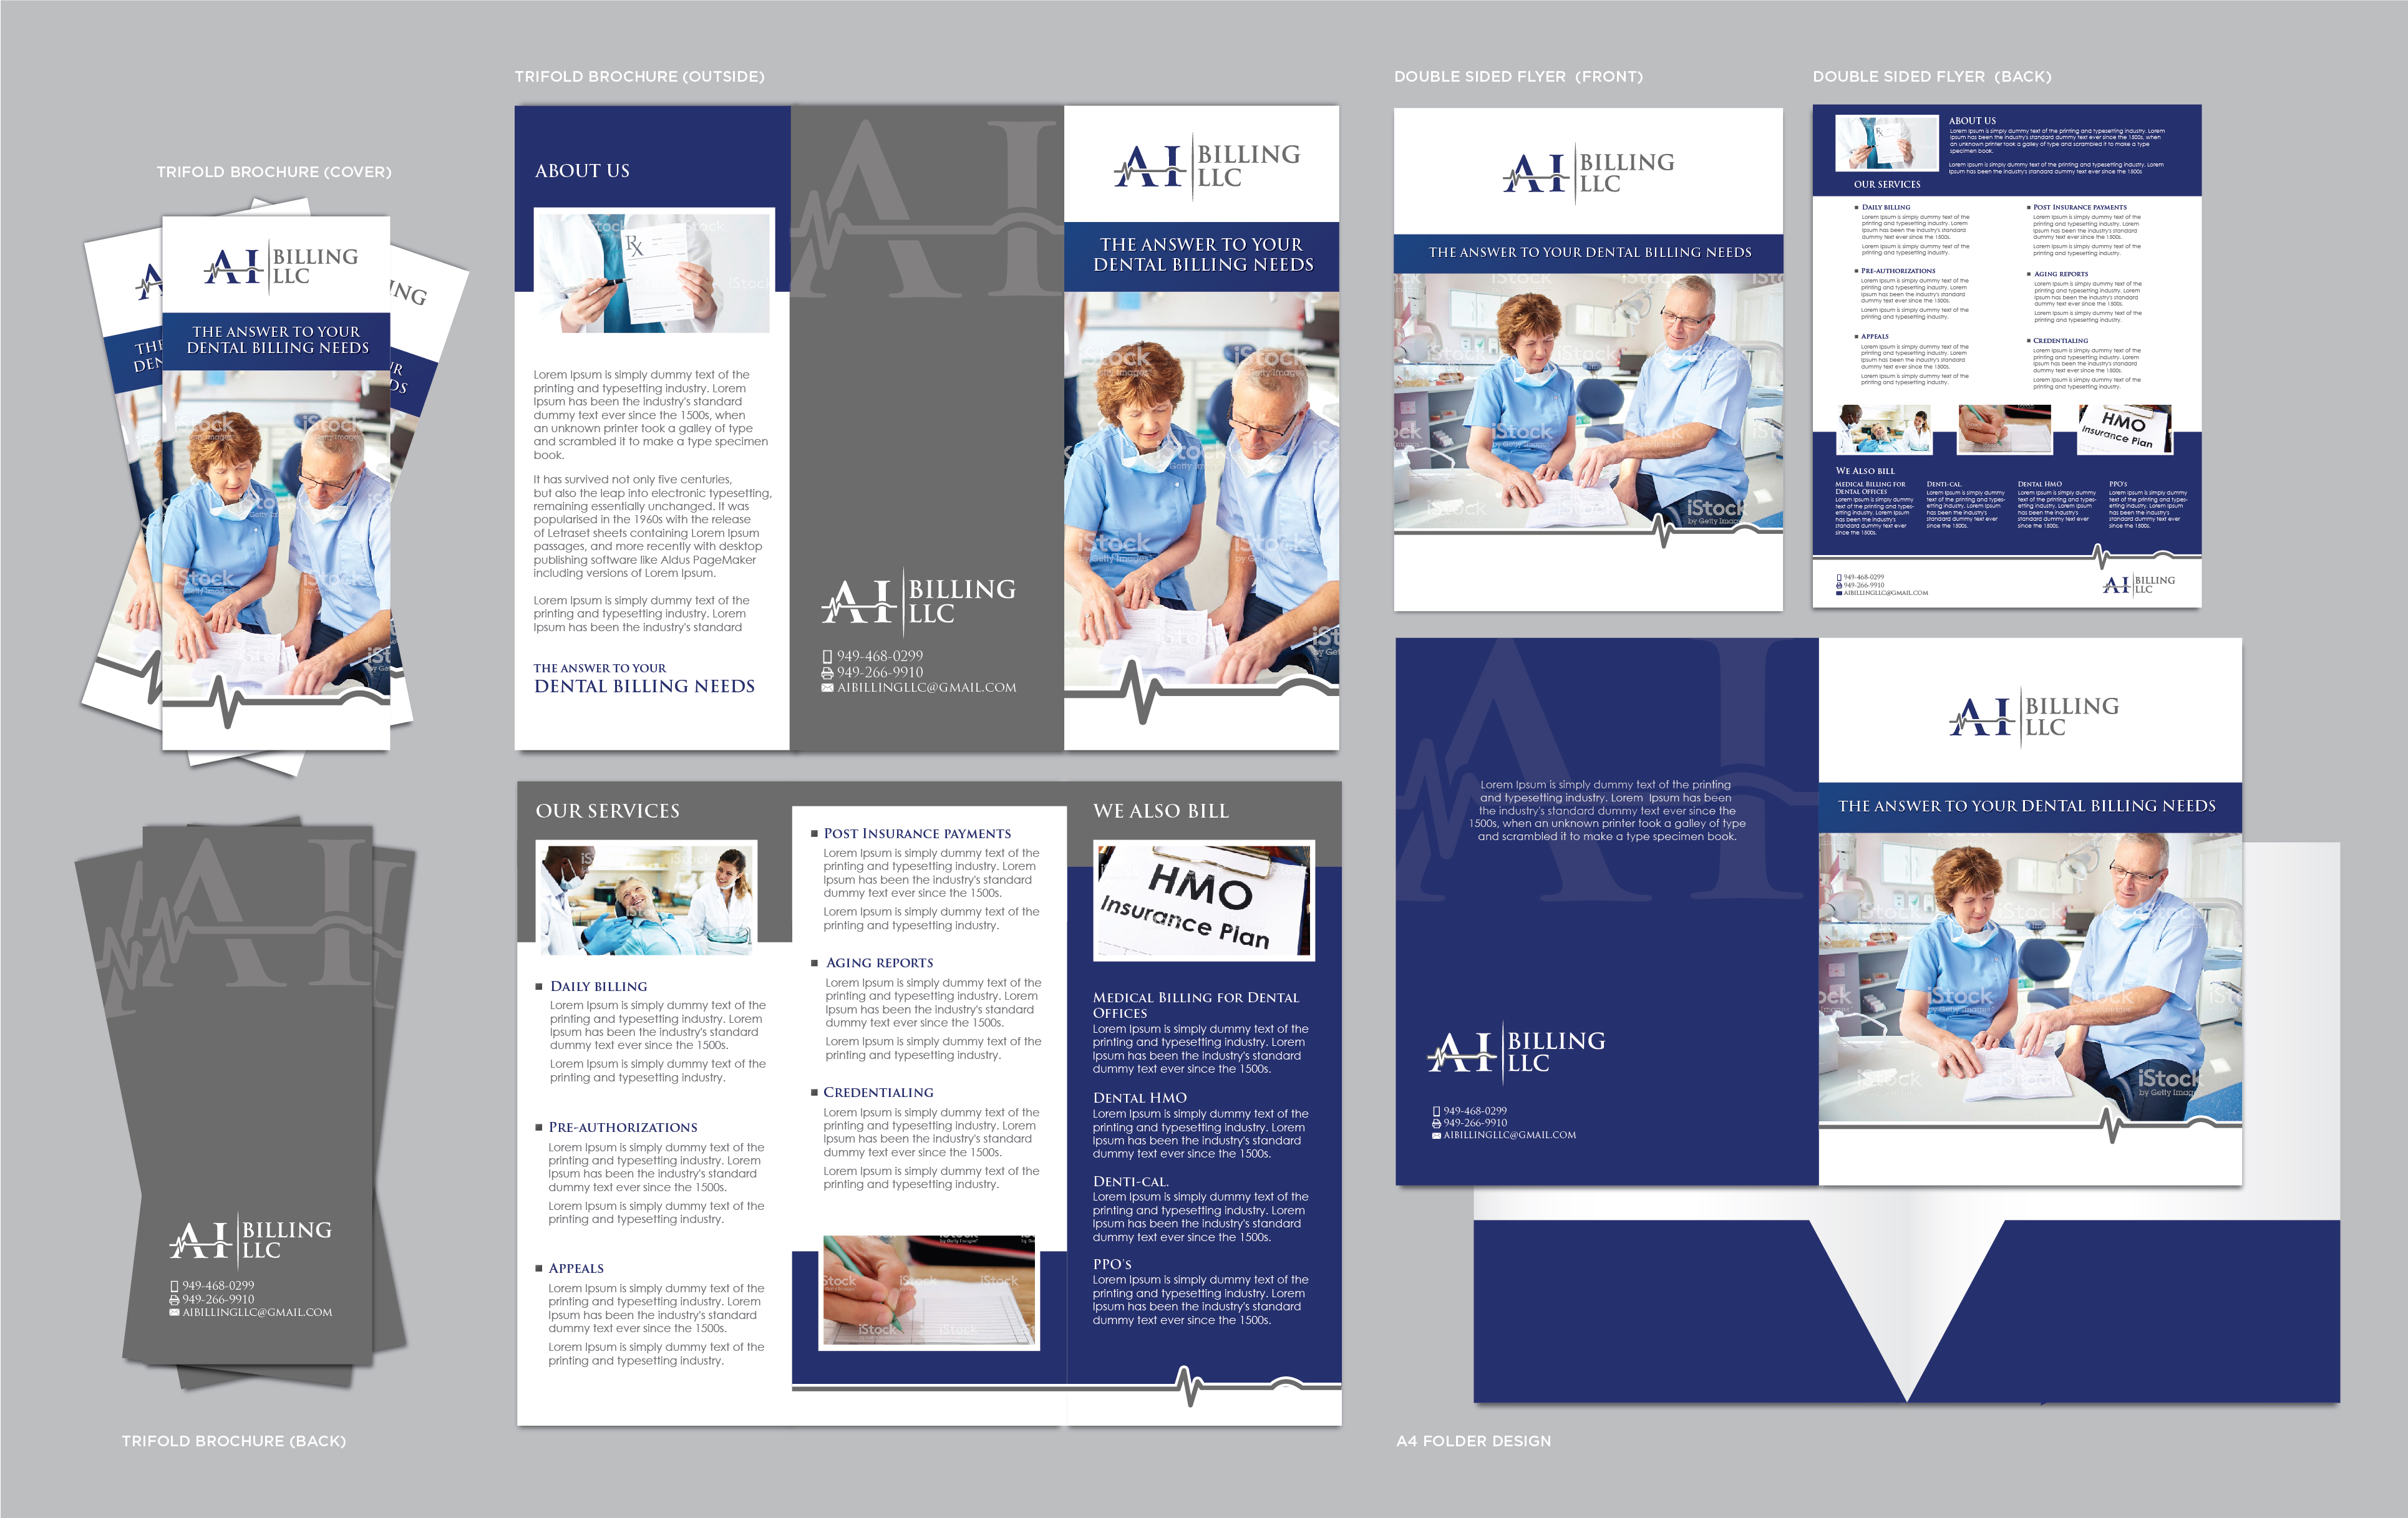 Brochure/marketing collateral for a dental billing company - Financial Services